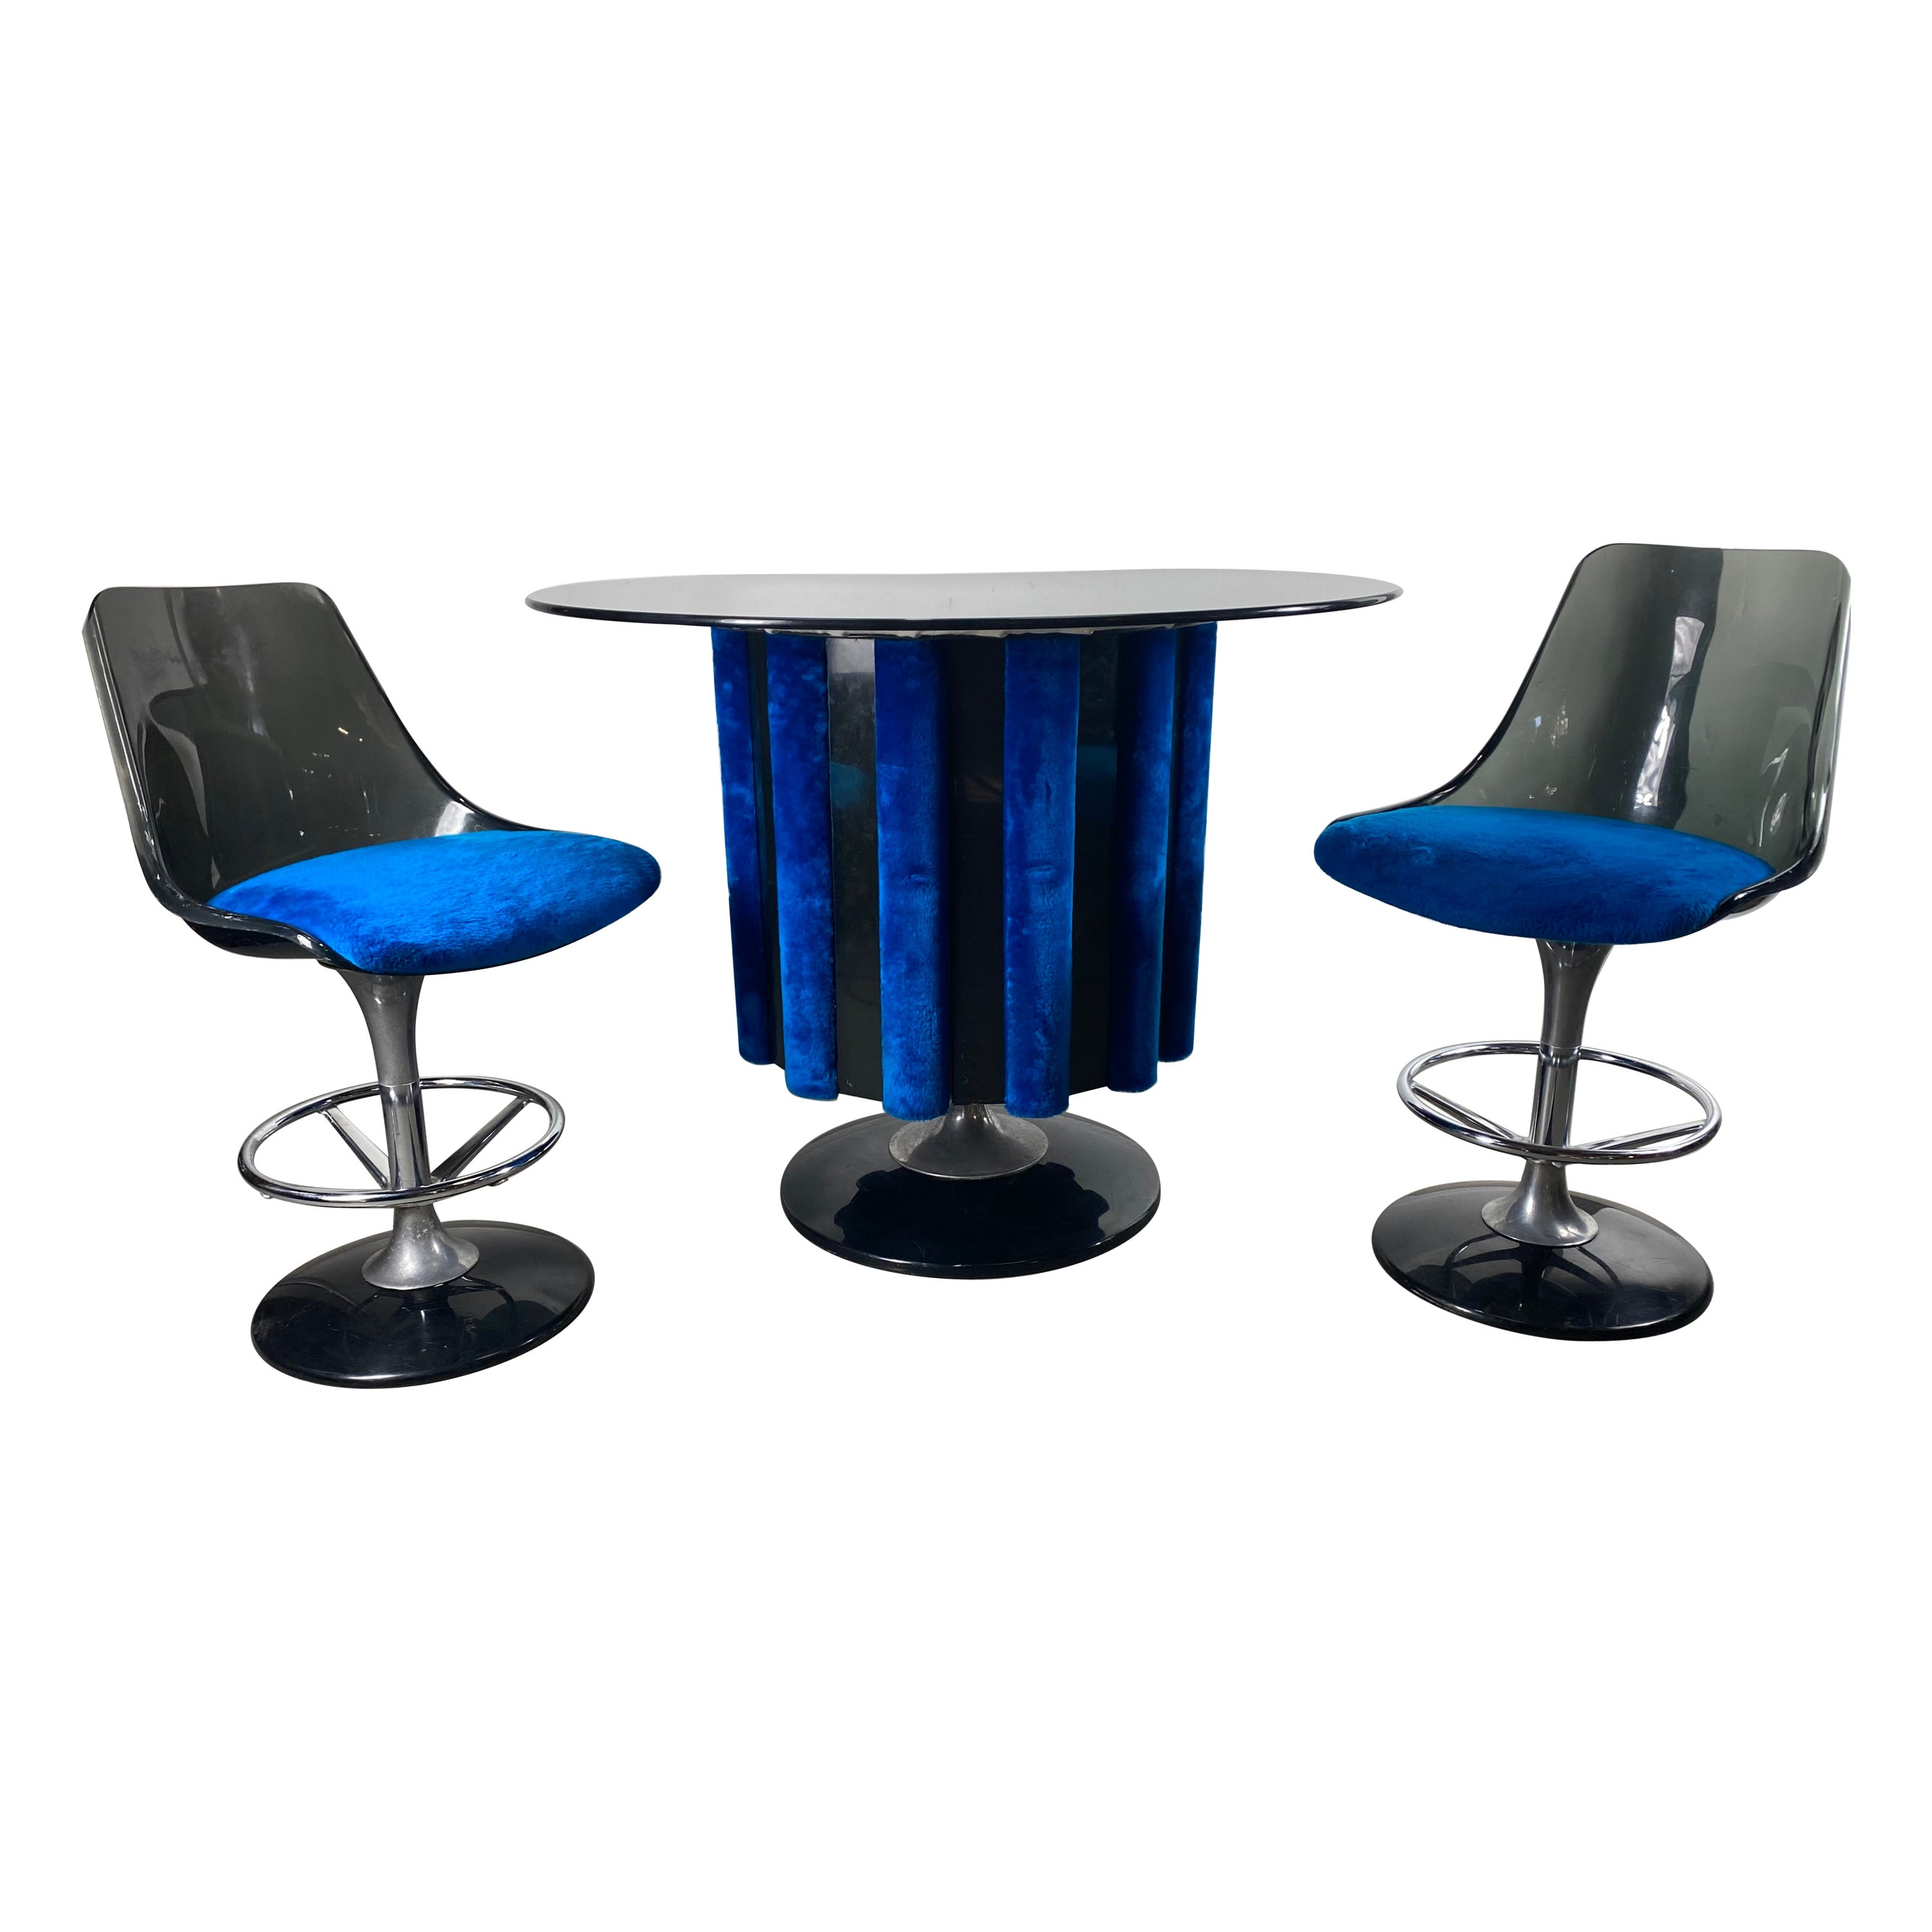 1970s Space Age Three-Piece Pedestal Dry Bar with Two Stools by Chrome Craft